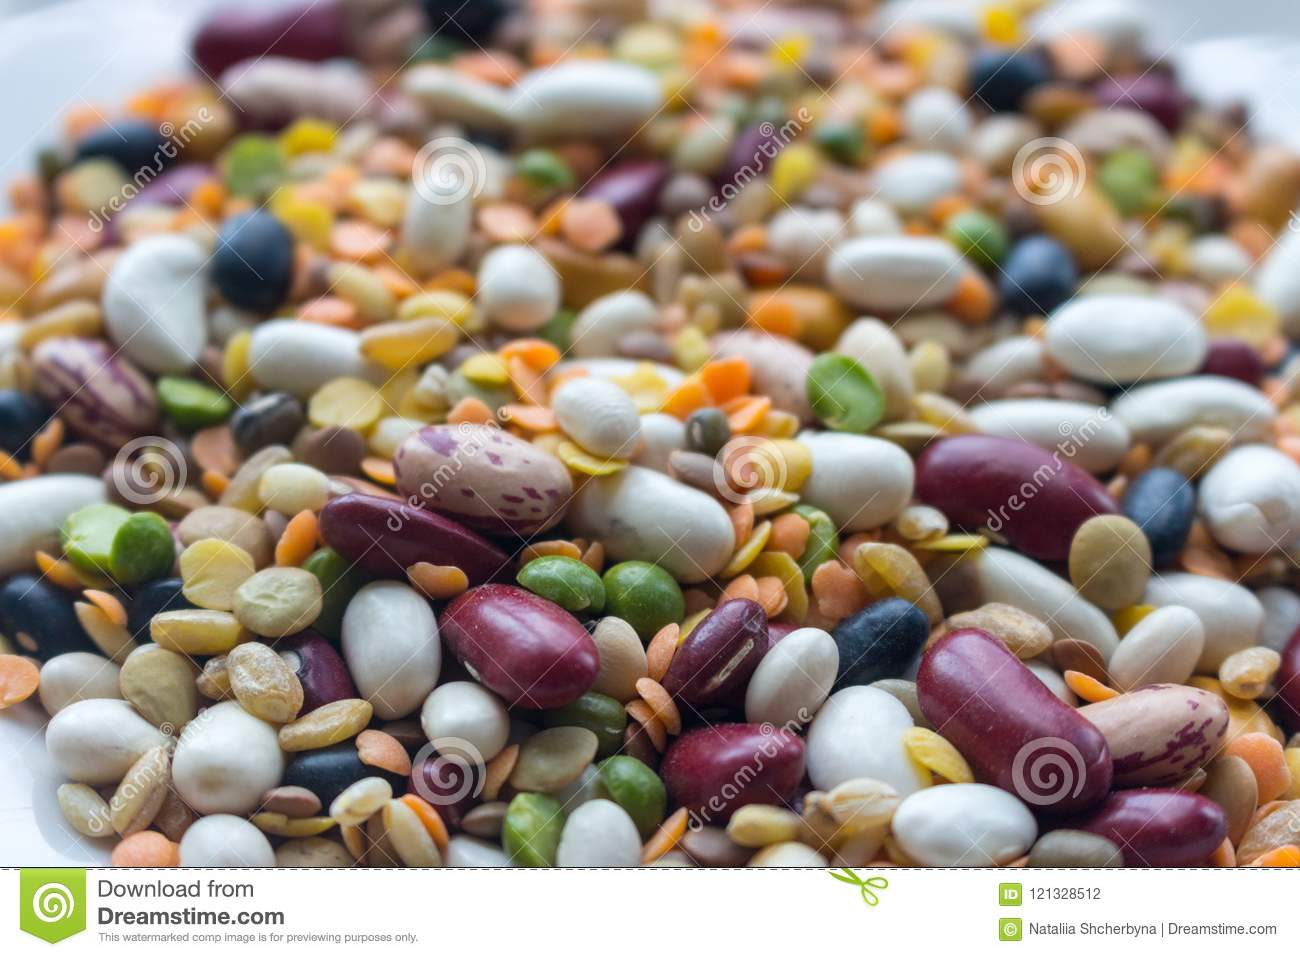 Mix of beans, peas, mung, lentil and kidney beans closeup. Organic healthy food. Mixed beans in perspective.